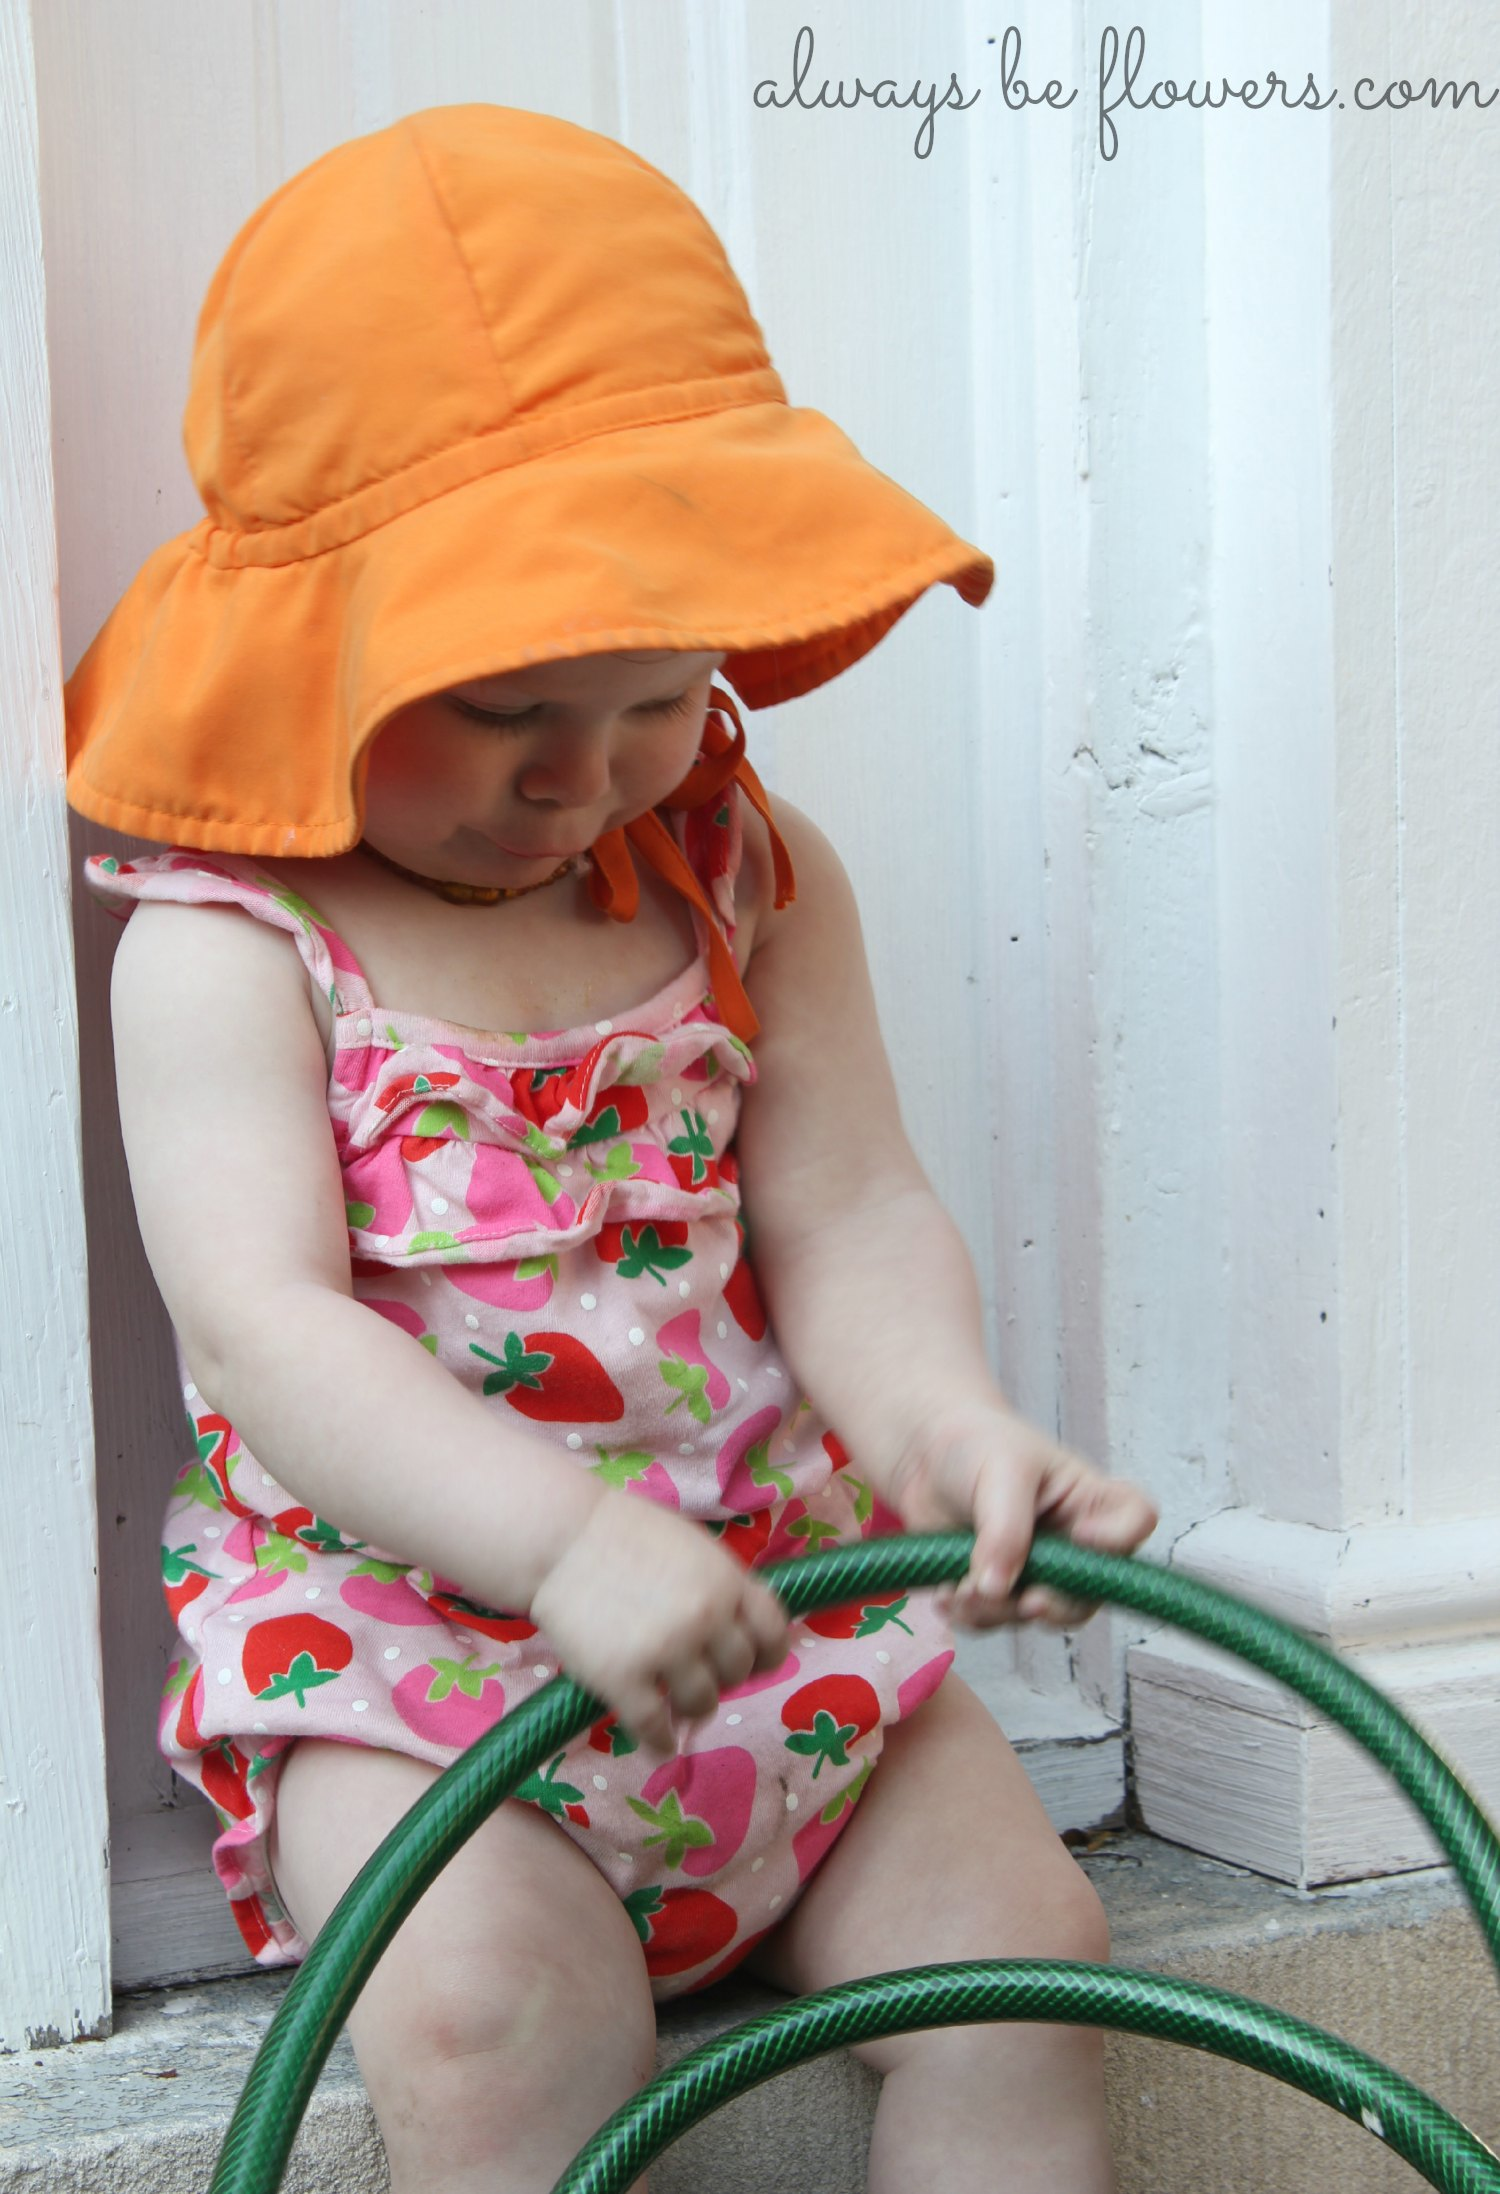 Watering seems to be fascinating to my toddler.